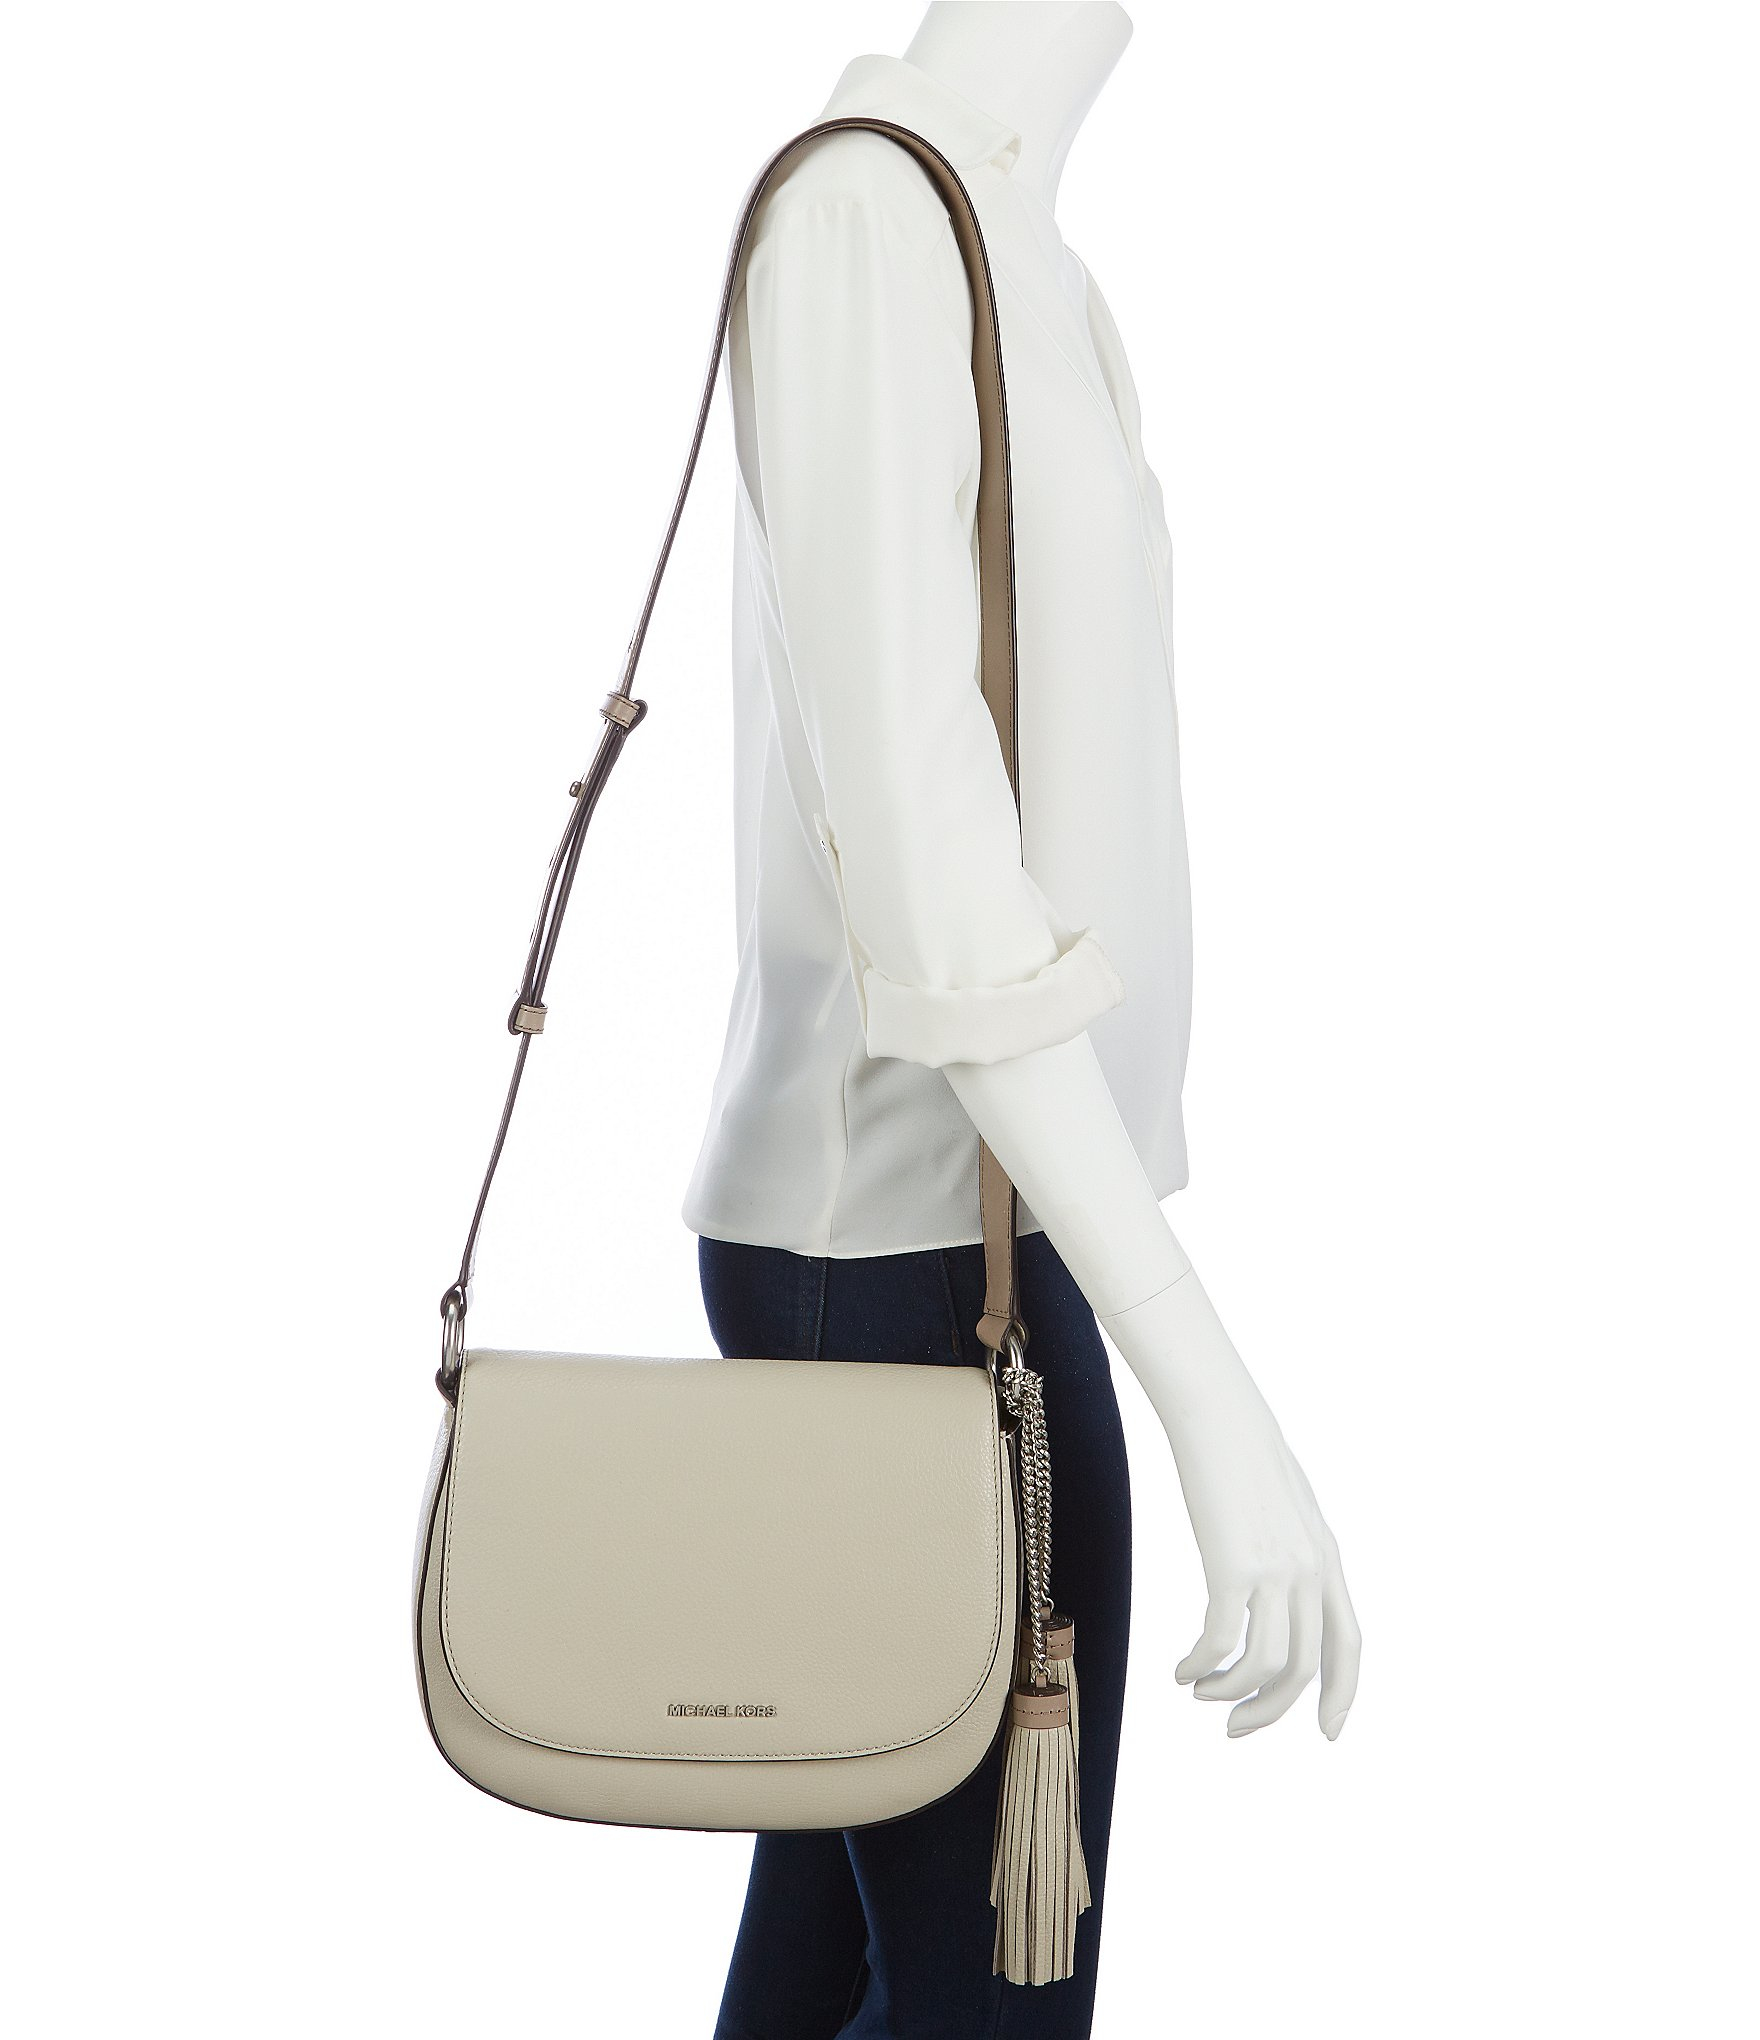 dce36bc8c0b4 Lyst - MICHAEL Michael Kors Elyse Leather Tassel Large Saddle Bag in ...